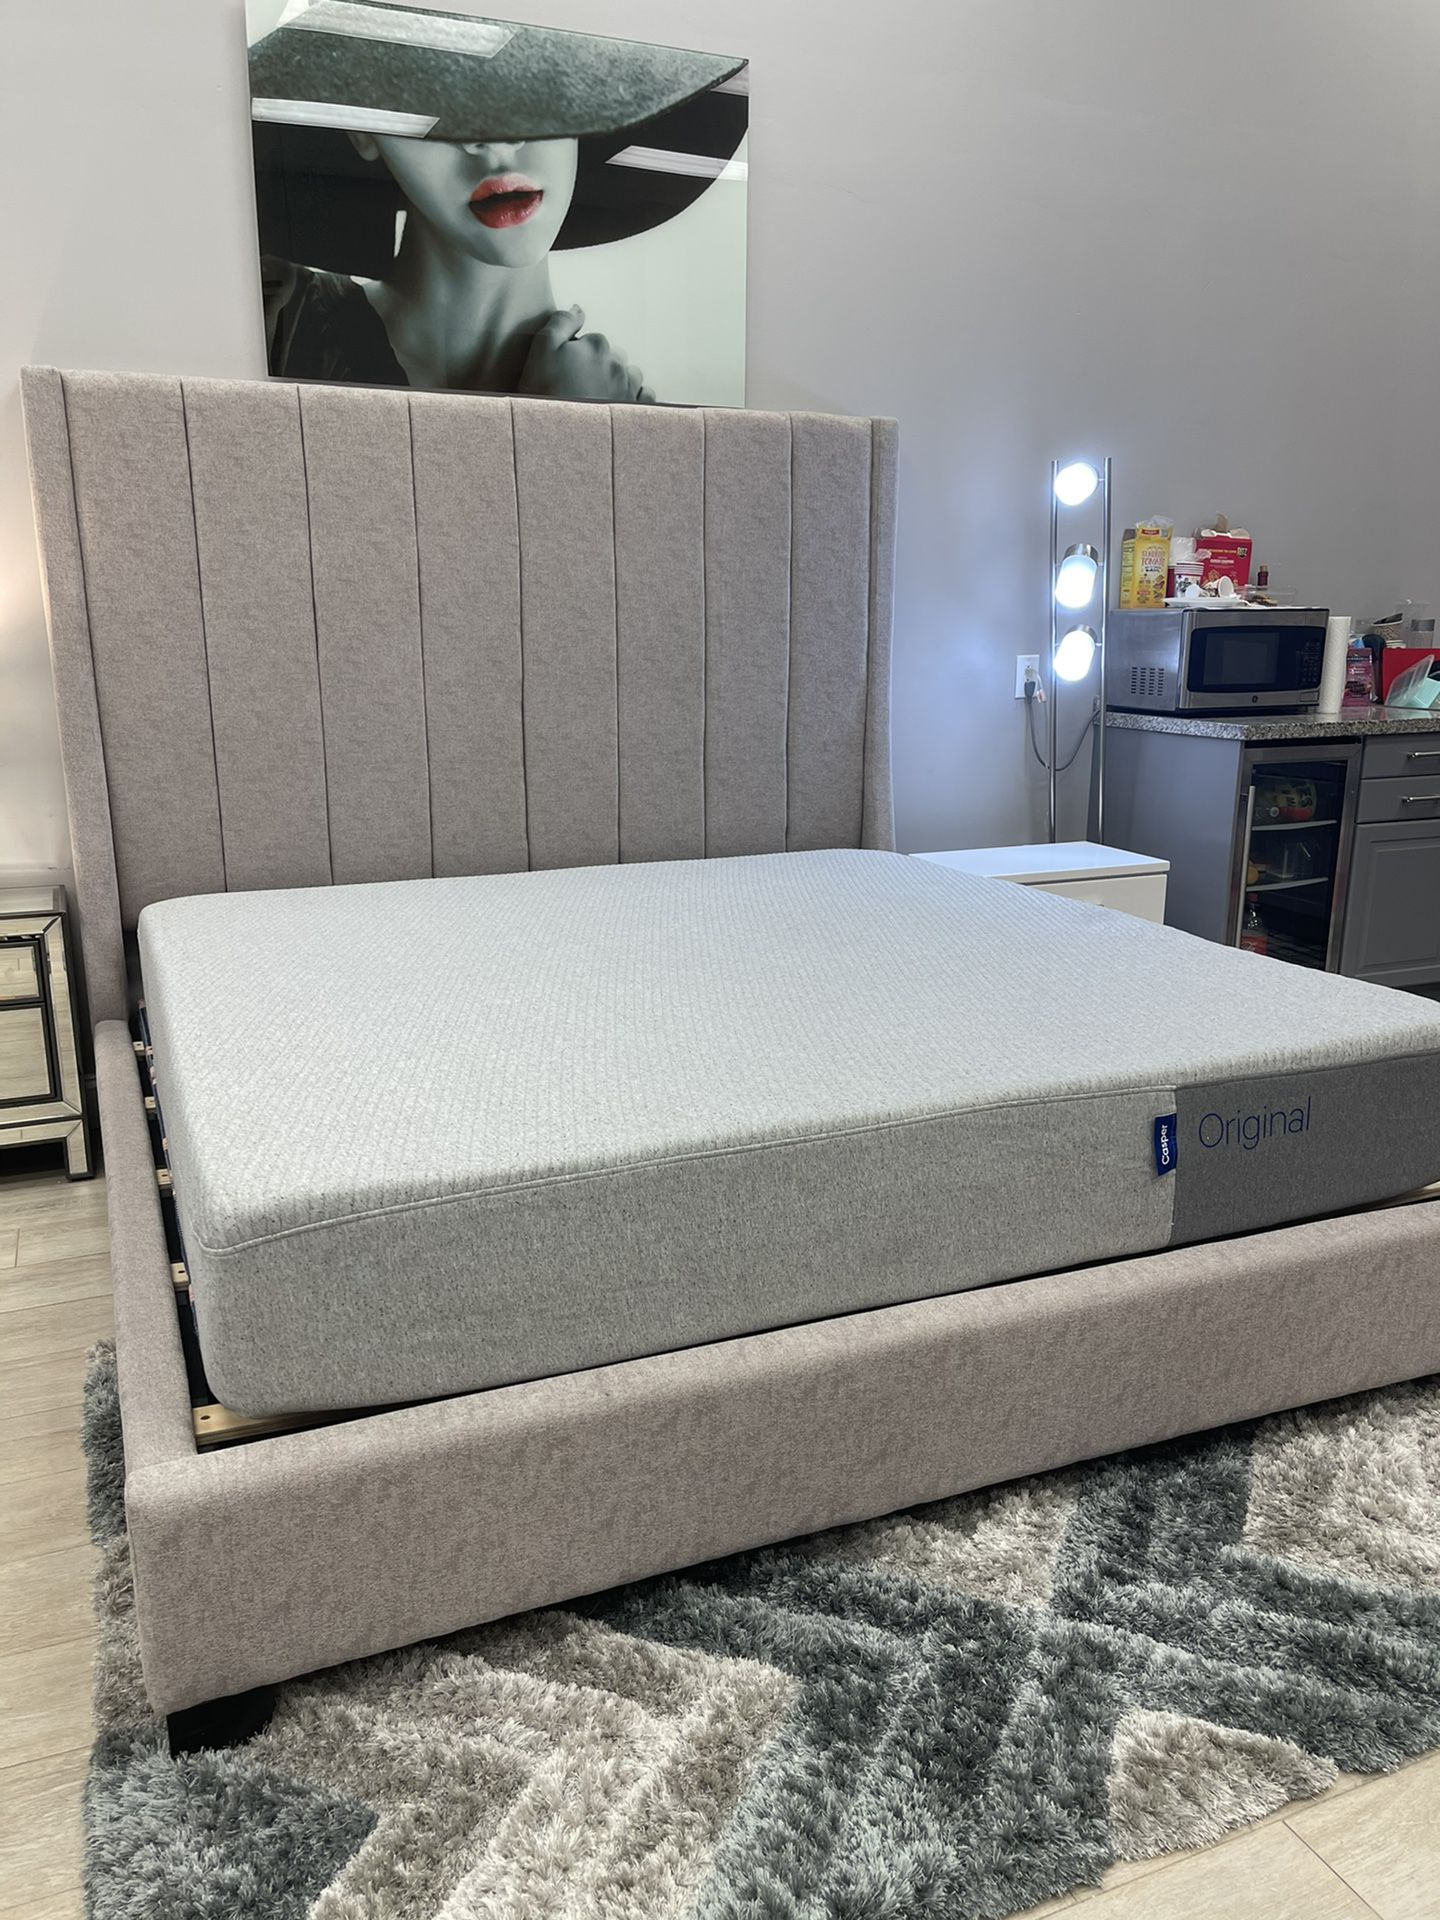 King Bed Frame // Financing Available